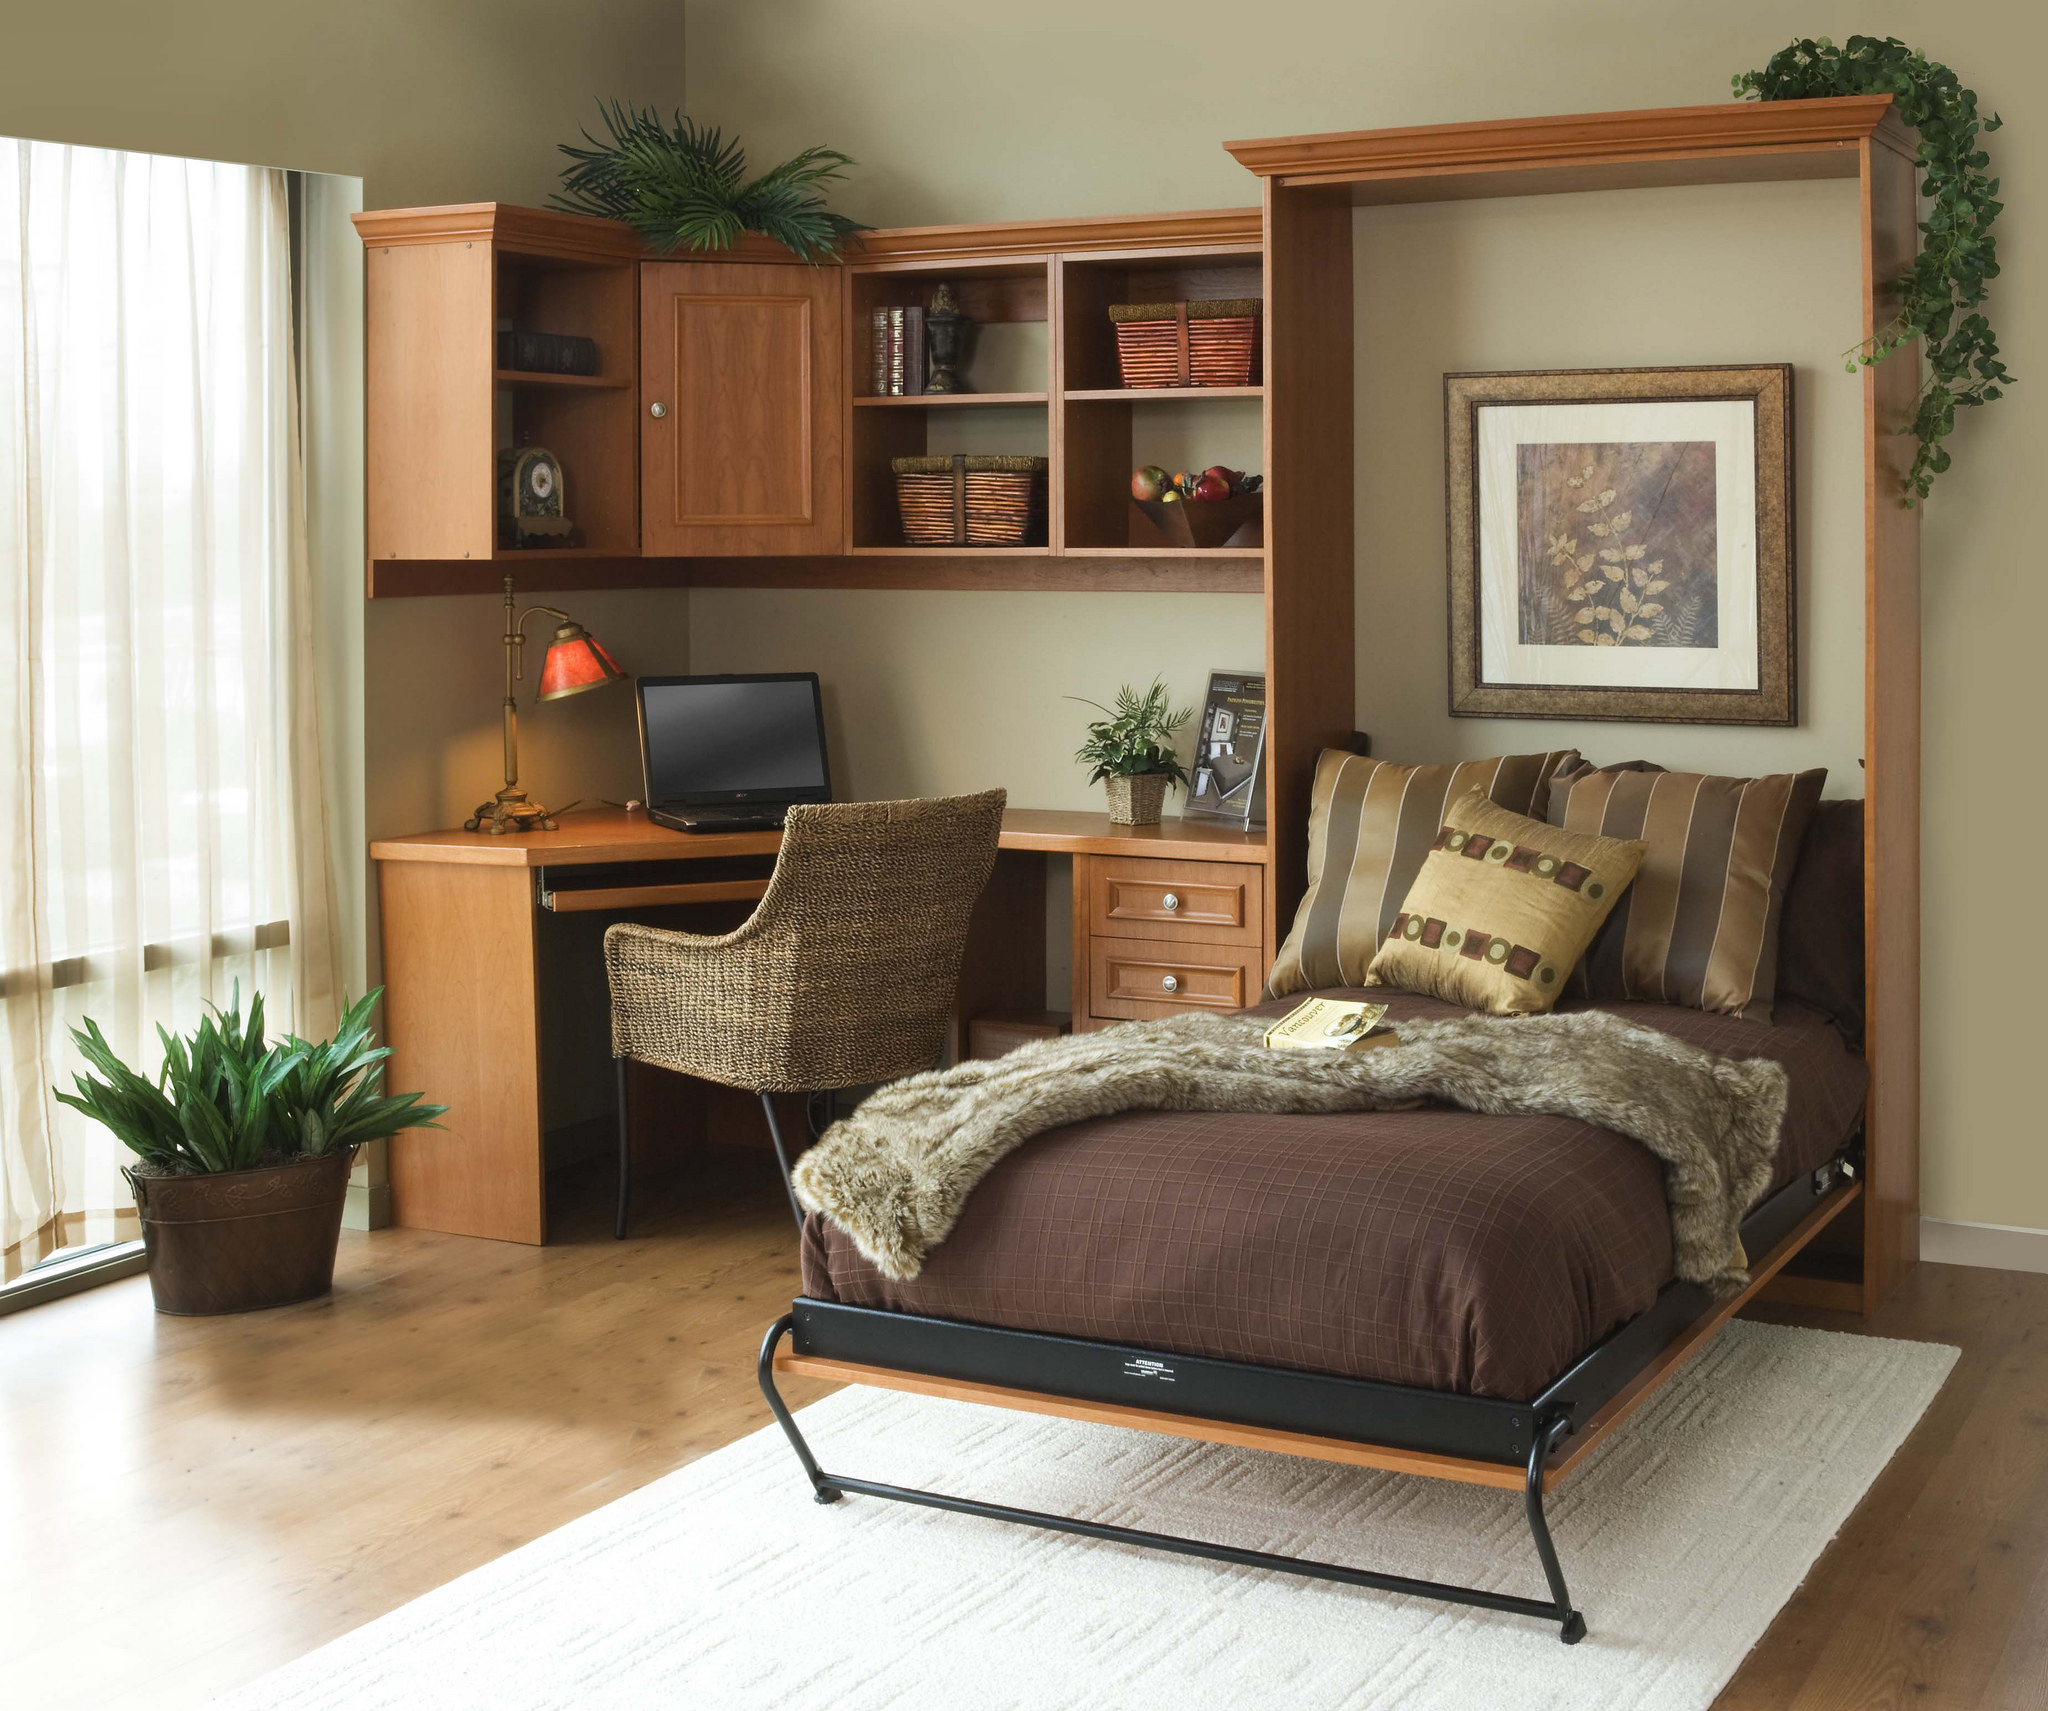 murphy beds in fairfield, new jersey